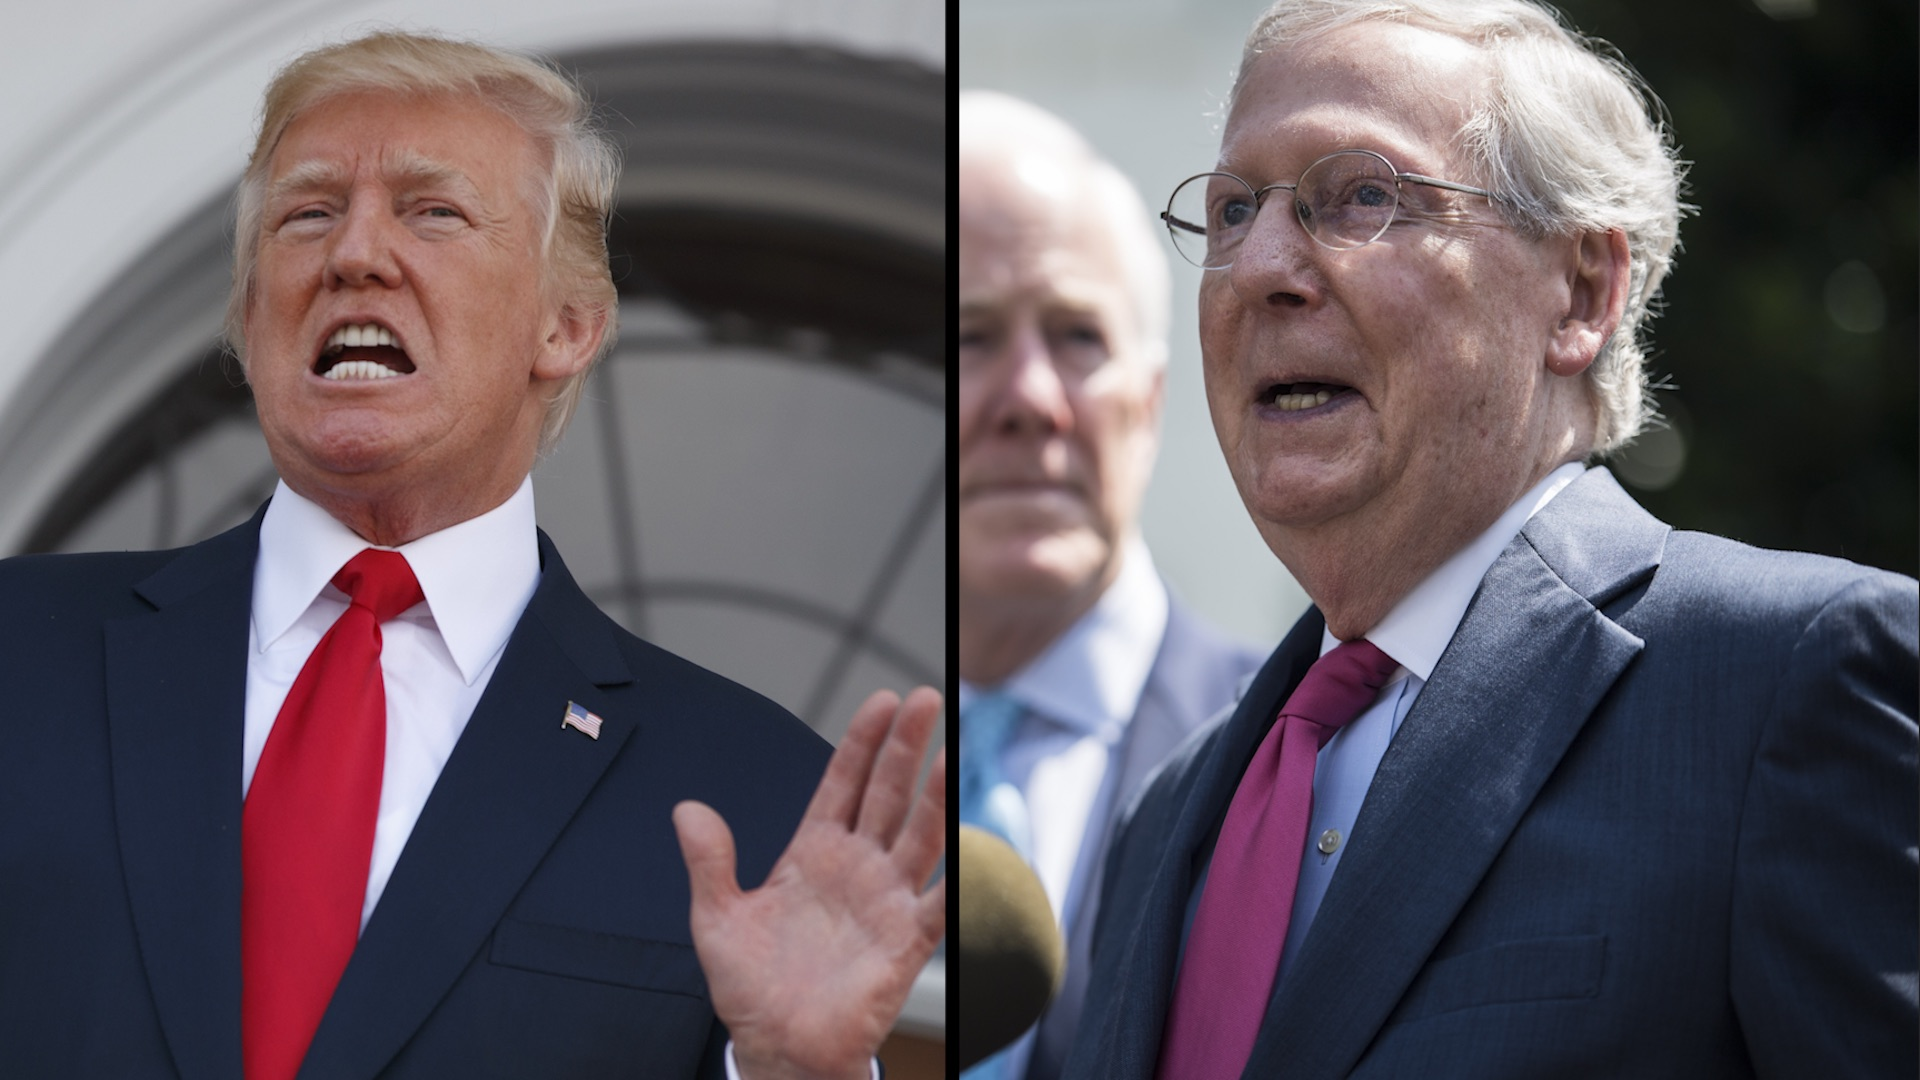 Trump attacks on McConnell bring rebukes from fellow Republicans